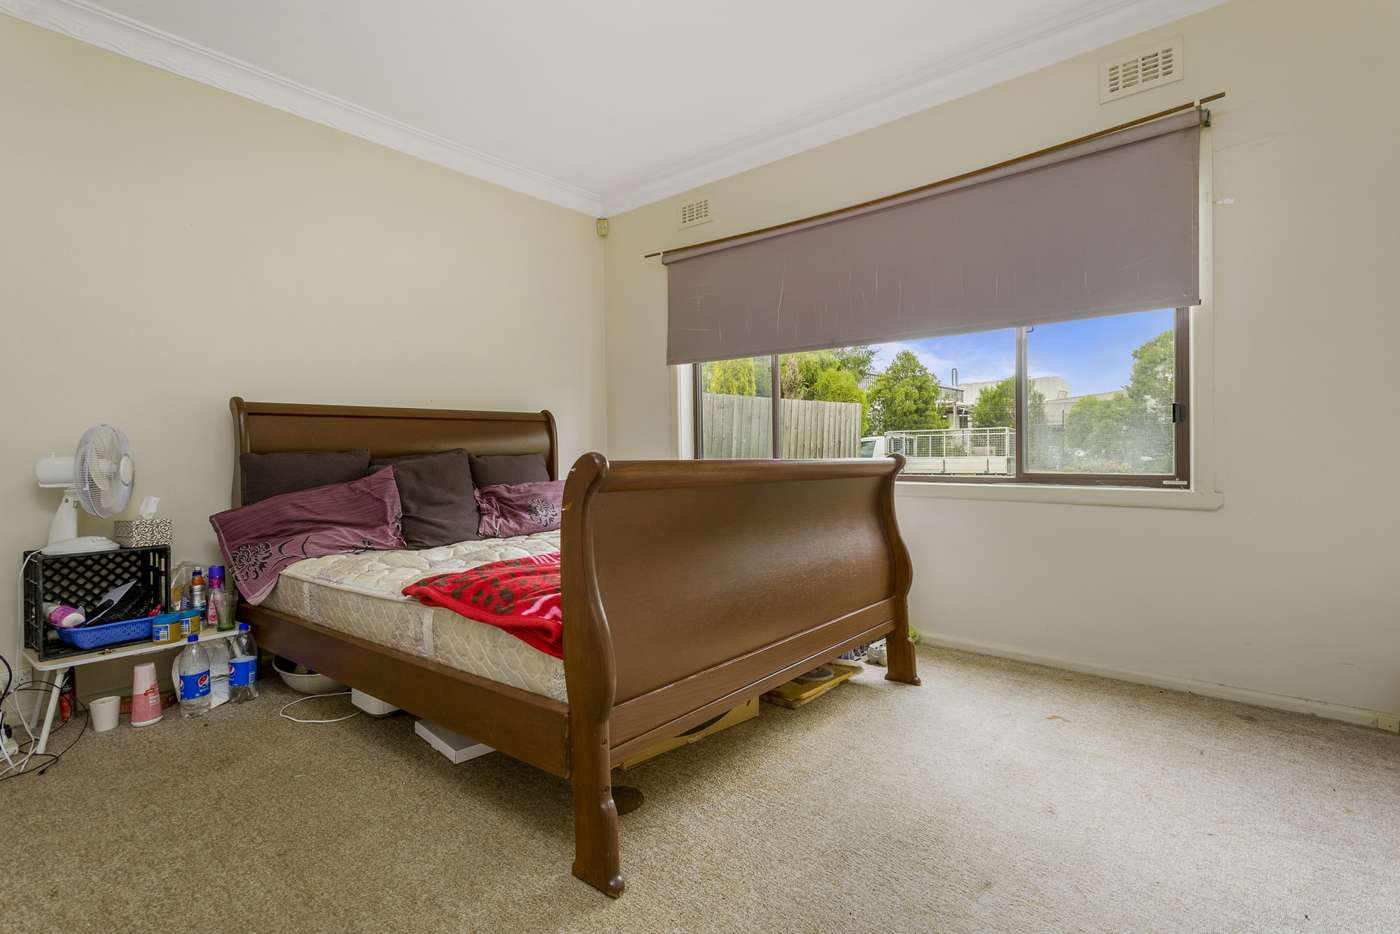 Fifth view of Homely house listing, 112 Browns Road, Clayton VIC 3168